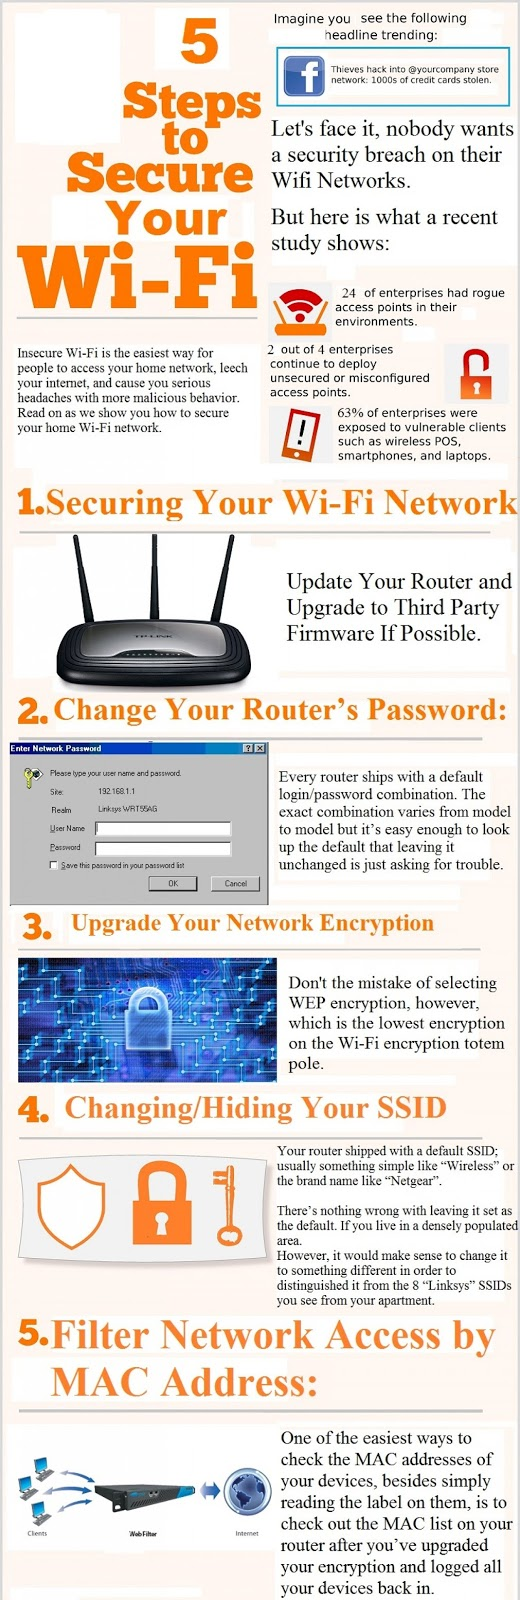 wireless security  - wifi - What is Wireless Security? How To Secure Wi-Fi Networks (Guide)